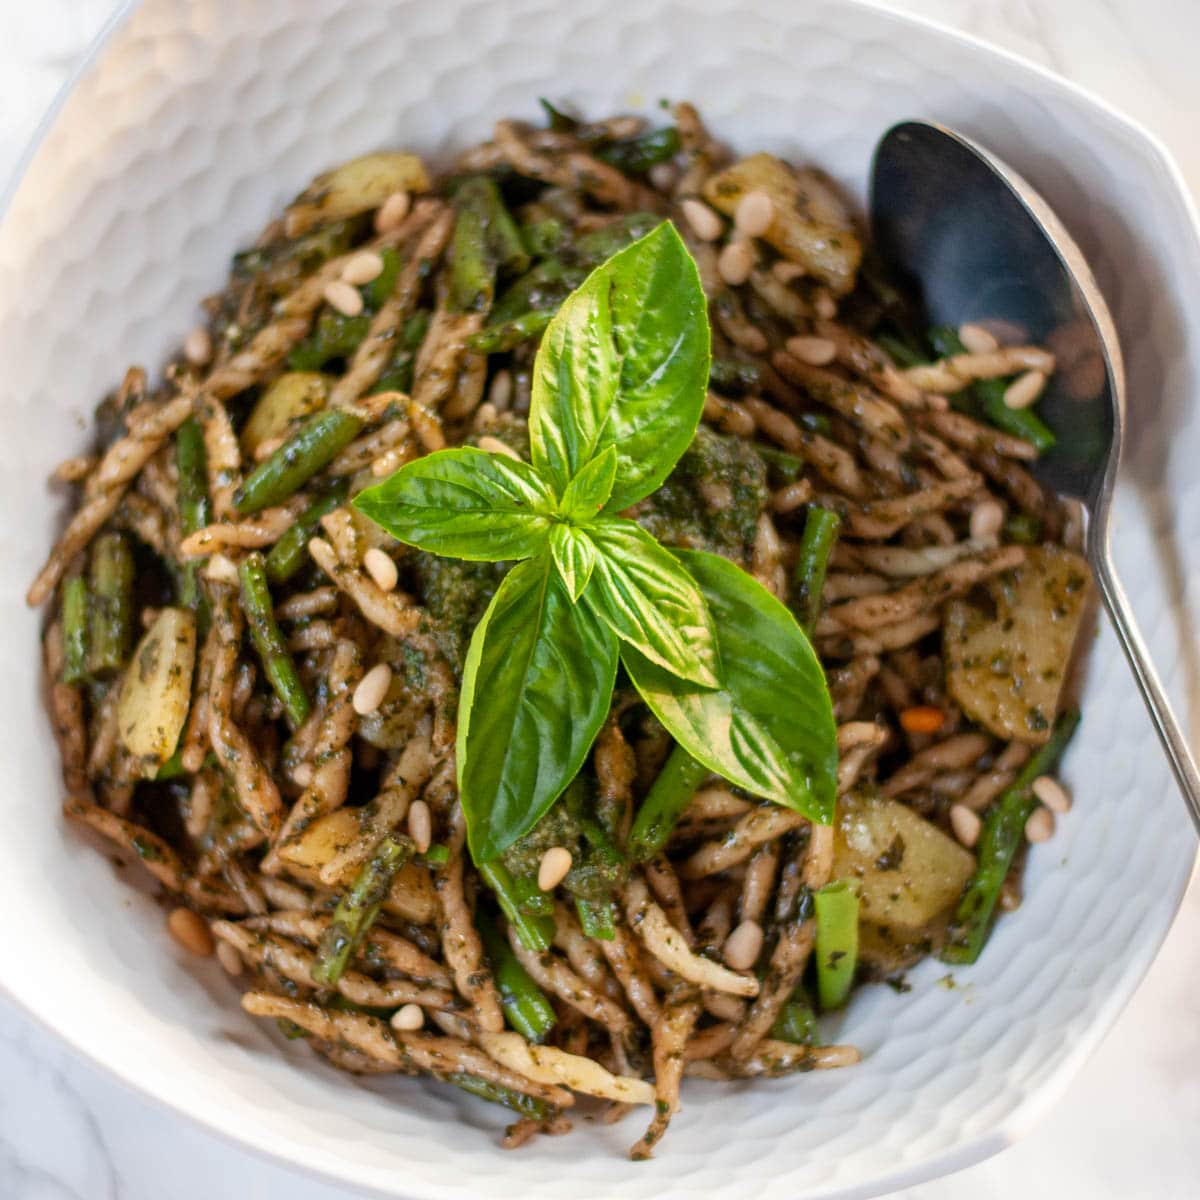 trofie with pesto Genovese on a serving plate with potatoes and green beans